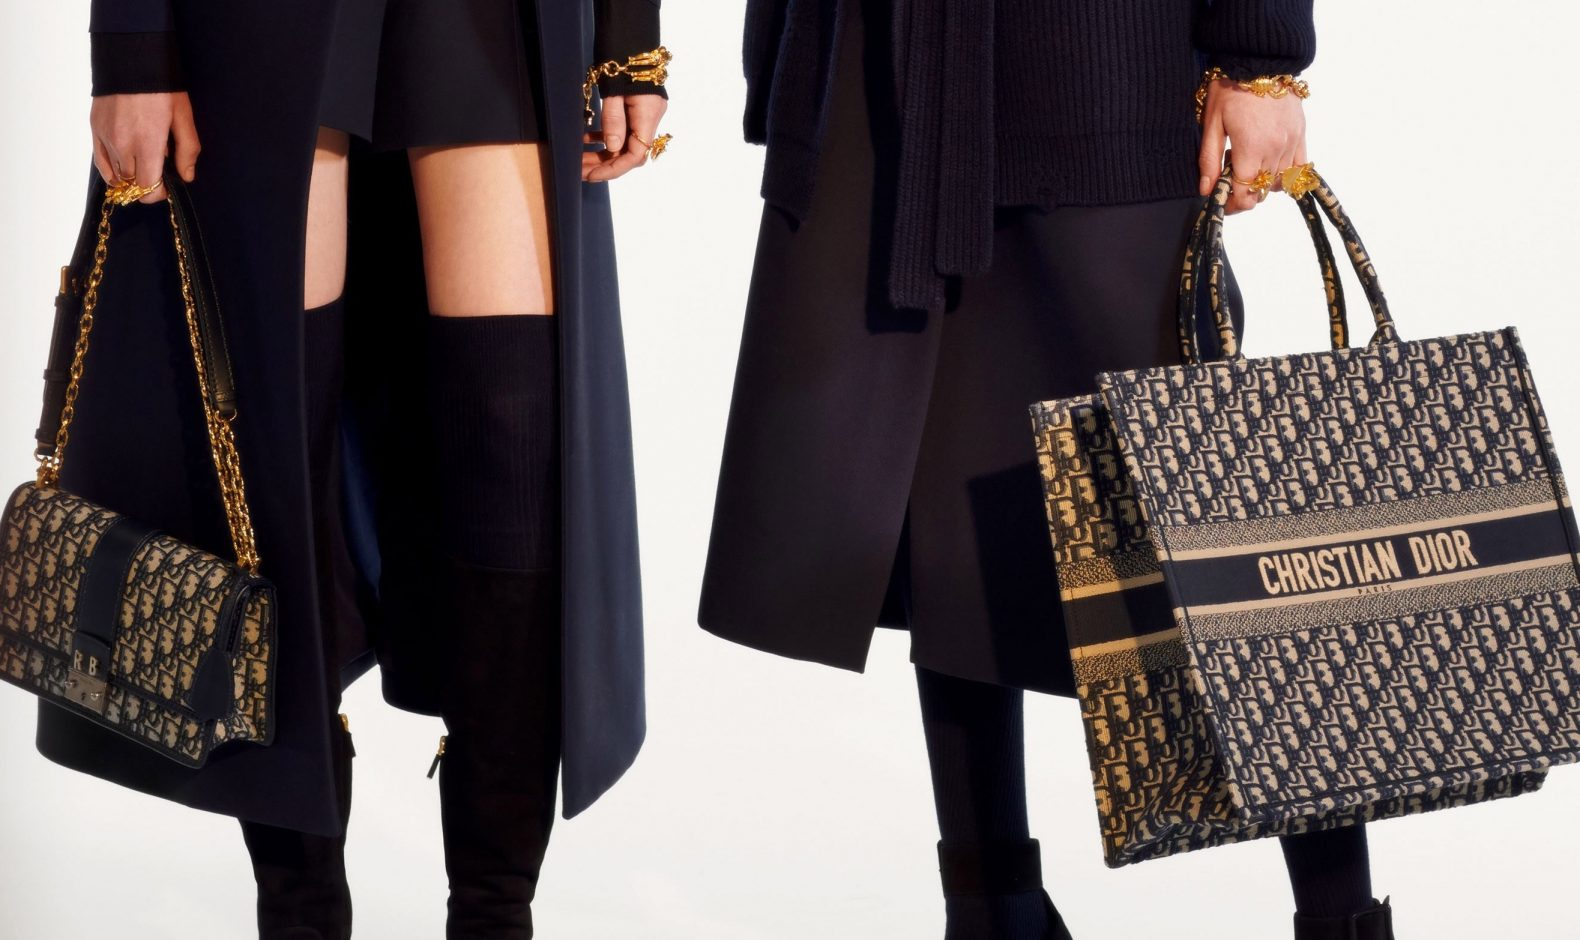 3b1ac6177 Dior Pre-Fall 2019 Bag Collection Features Snakeskin Flap Bags | Spotted  Fashion